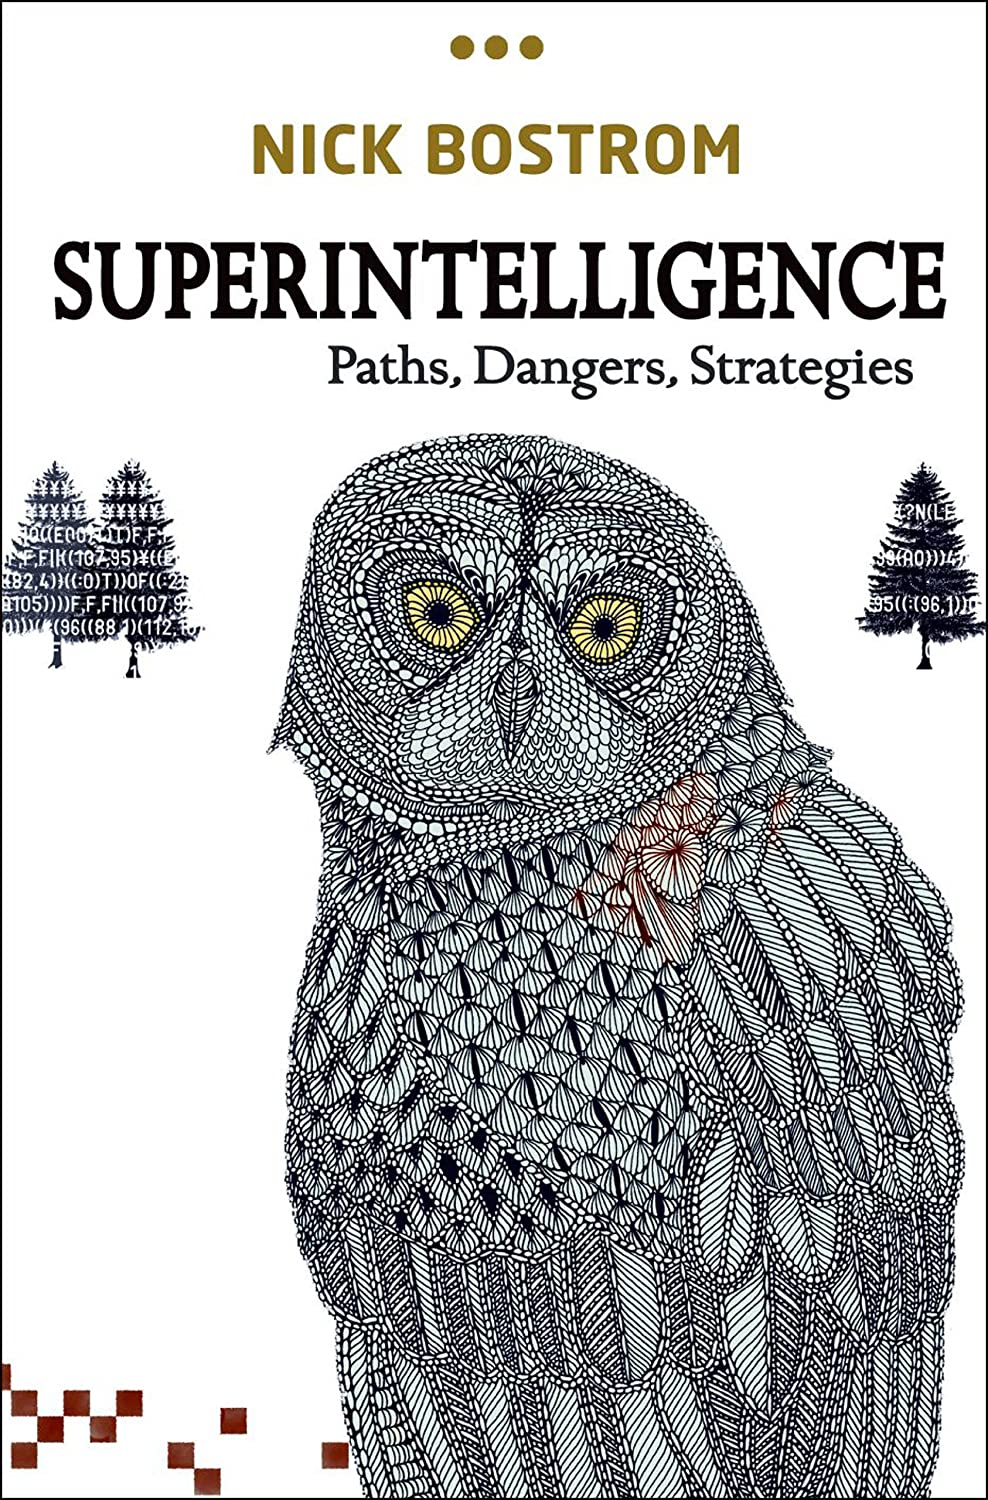 Nick Bostrom's Superintelligence